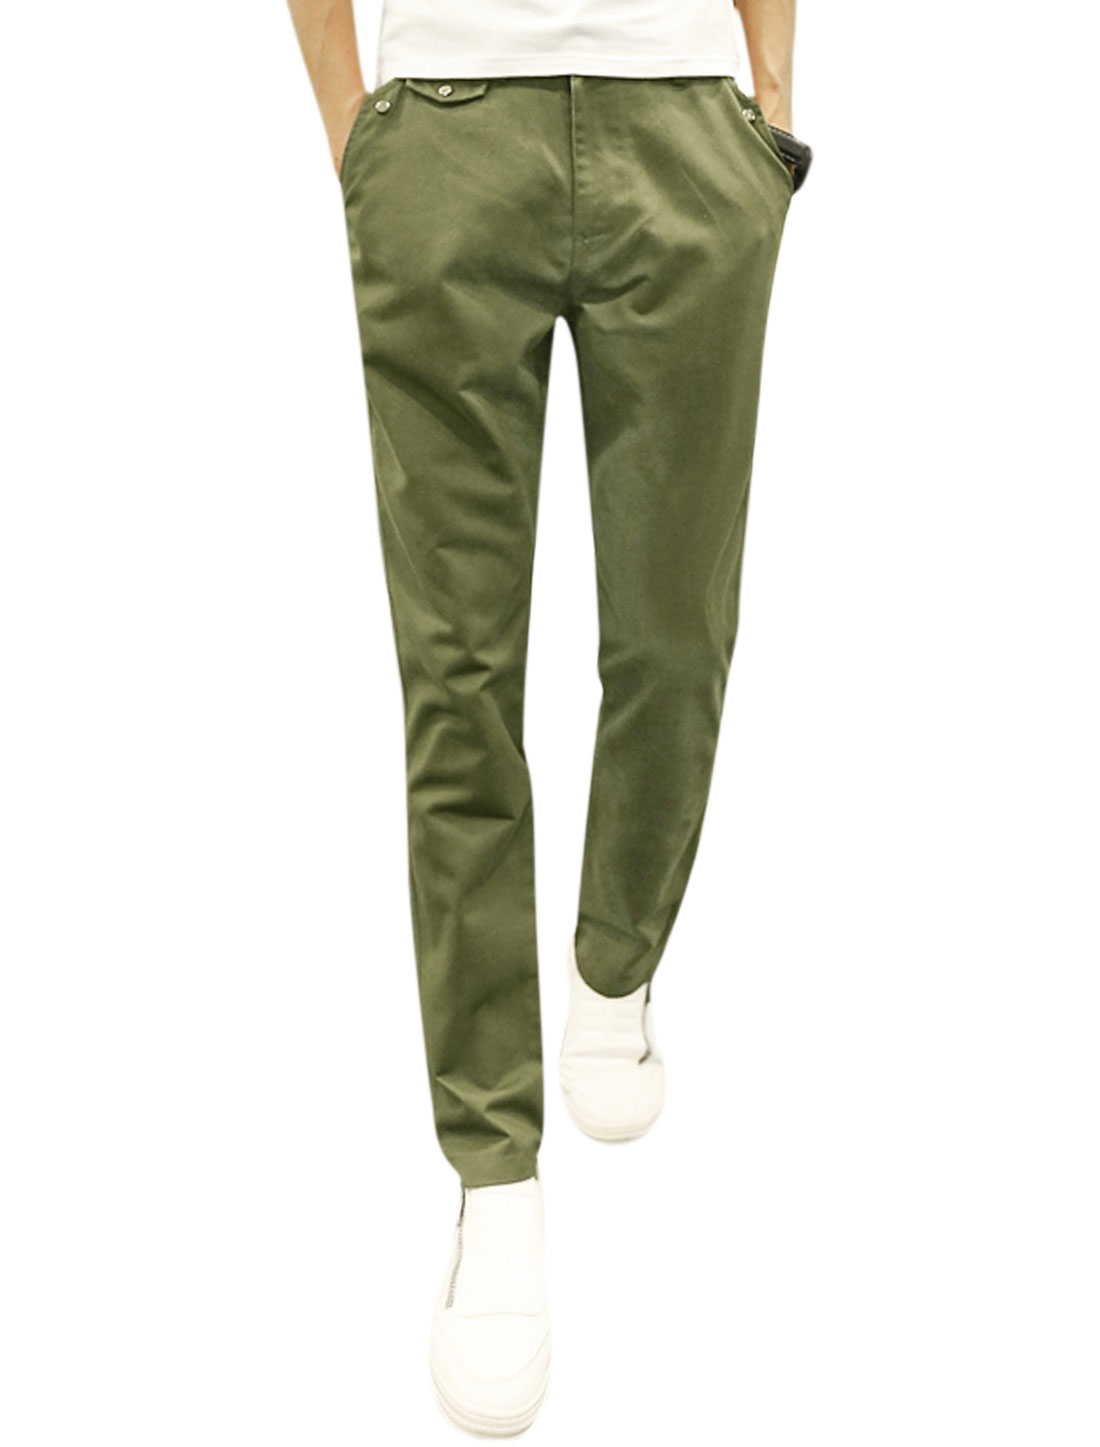 Men Natural Waist Zip Fly Button Closed Tapered Leisure Trousers Green W32